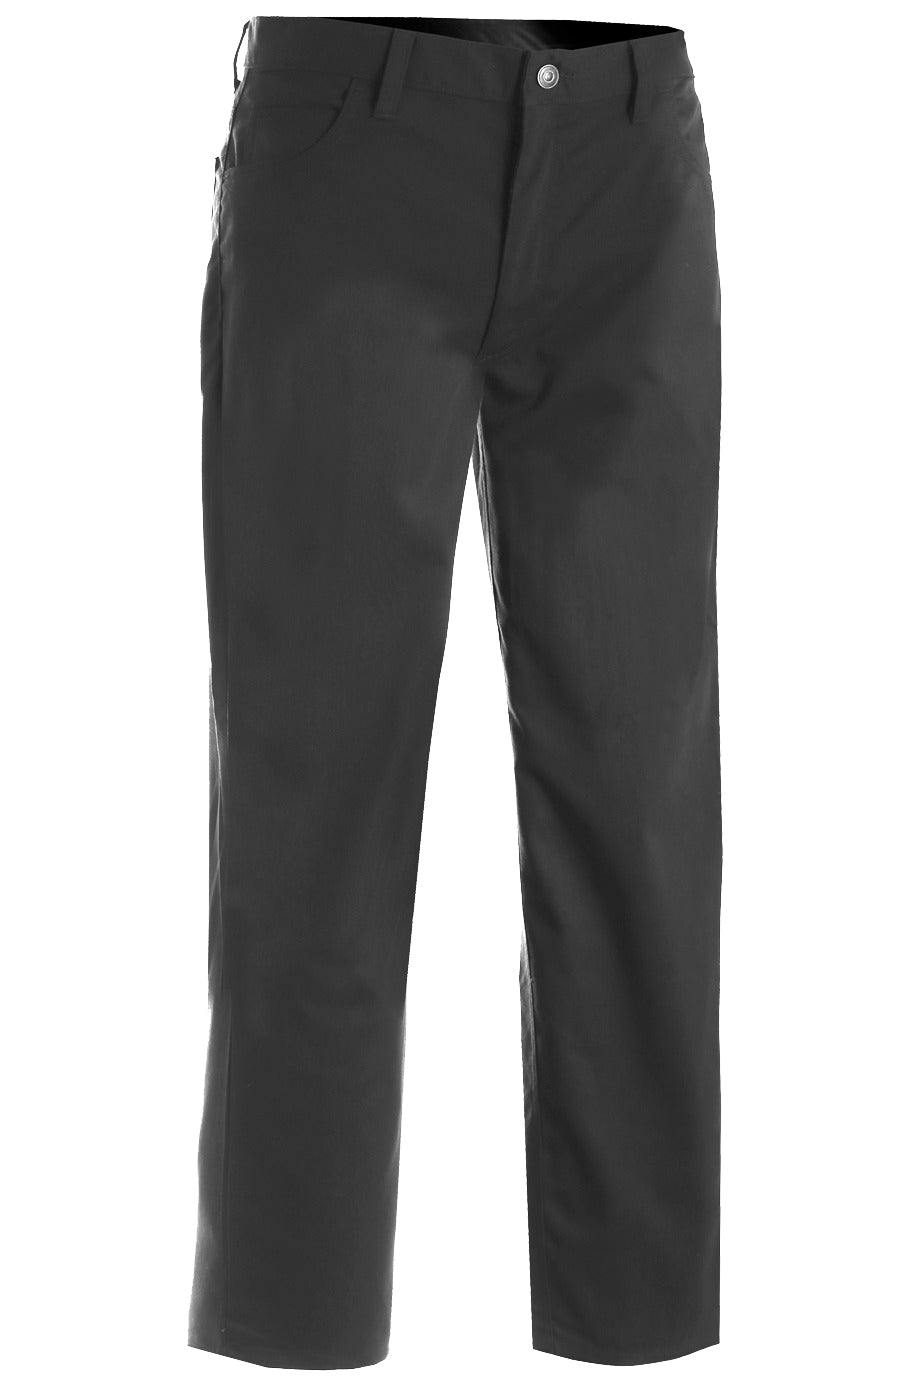 Edwards Mens Rugged Comfort Flat Front Pant - Grey